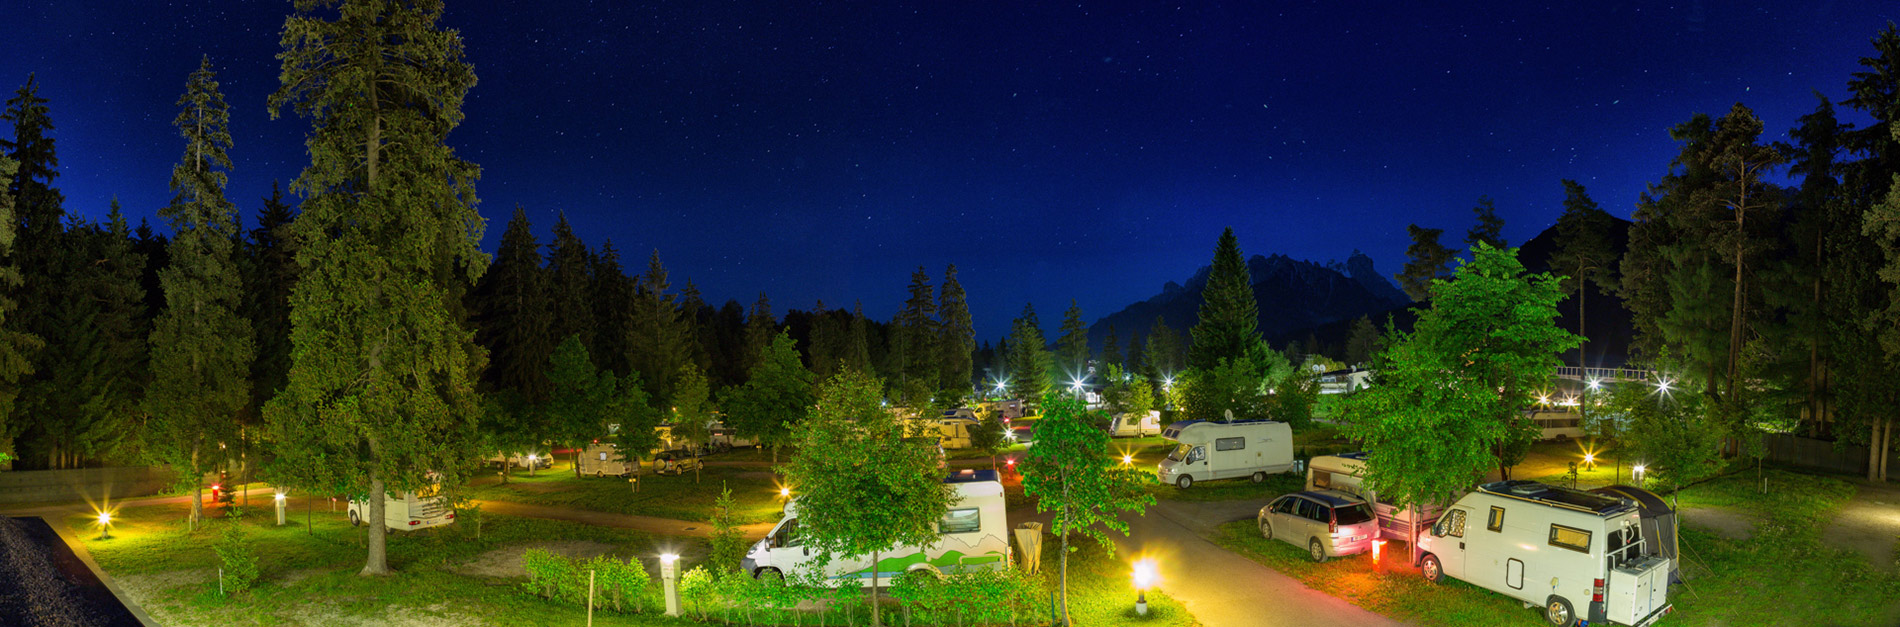 Camping Olympia by night